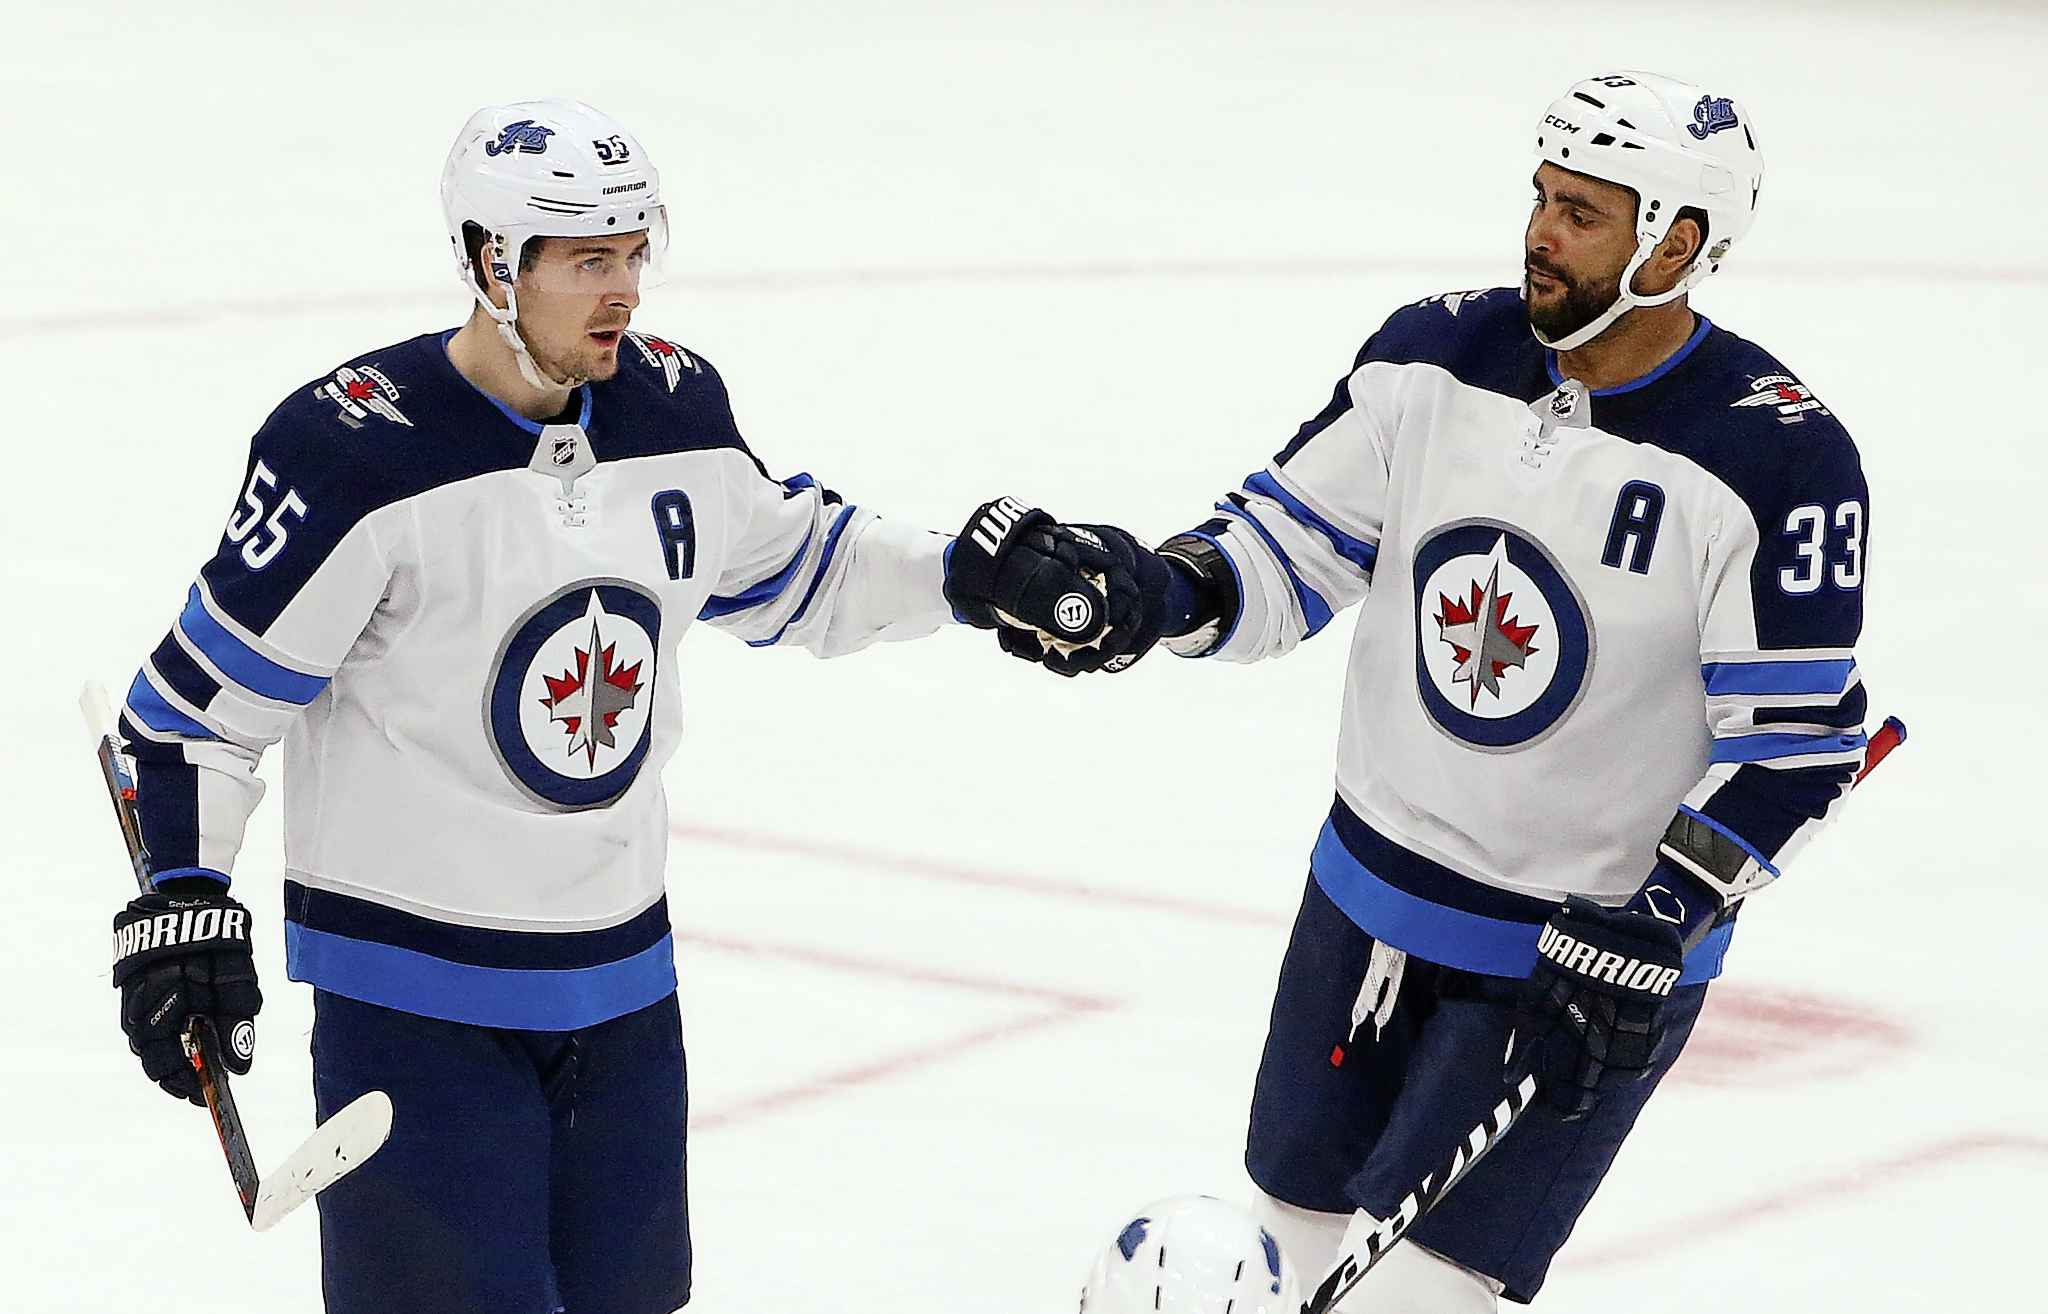 Winnipeg Jets centre Mark Scheifele (55) celebrates his goal against the Arizona Coyotes with defenceman Dustin Byfuglien (33) during the first period of an NHL hockey game Saturday, April 6, 2019, in Glendale, Ariz. (AP Photo/Ross D. Franklin)